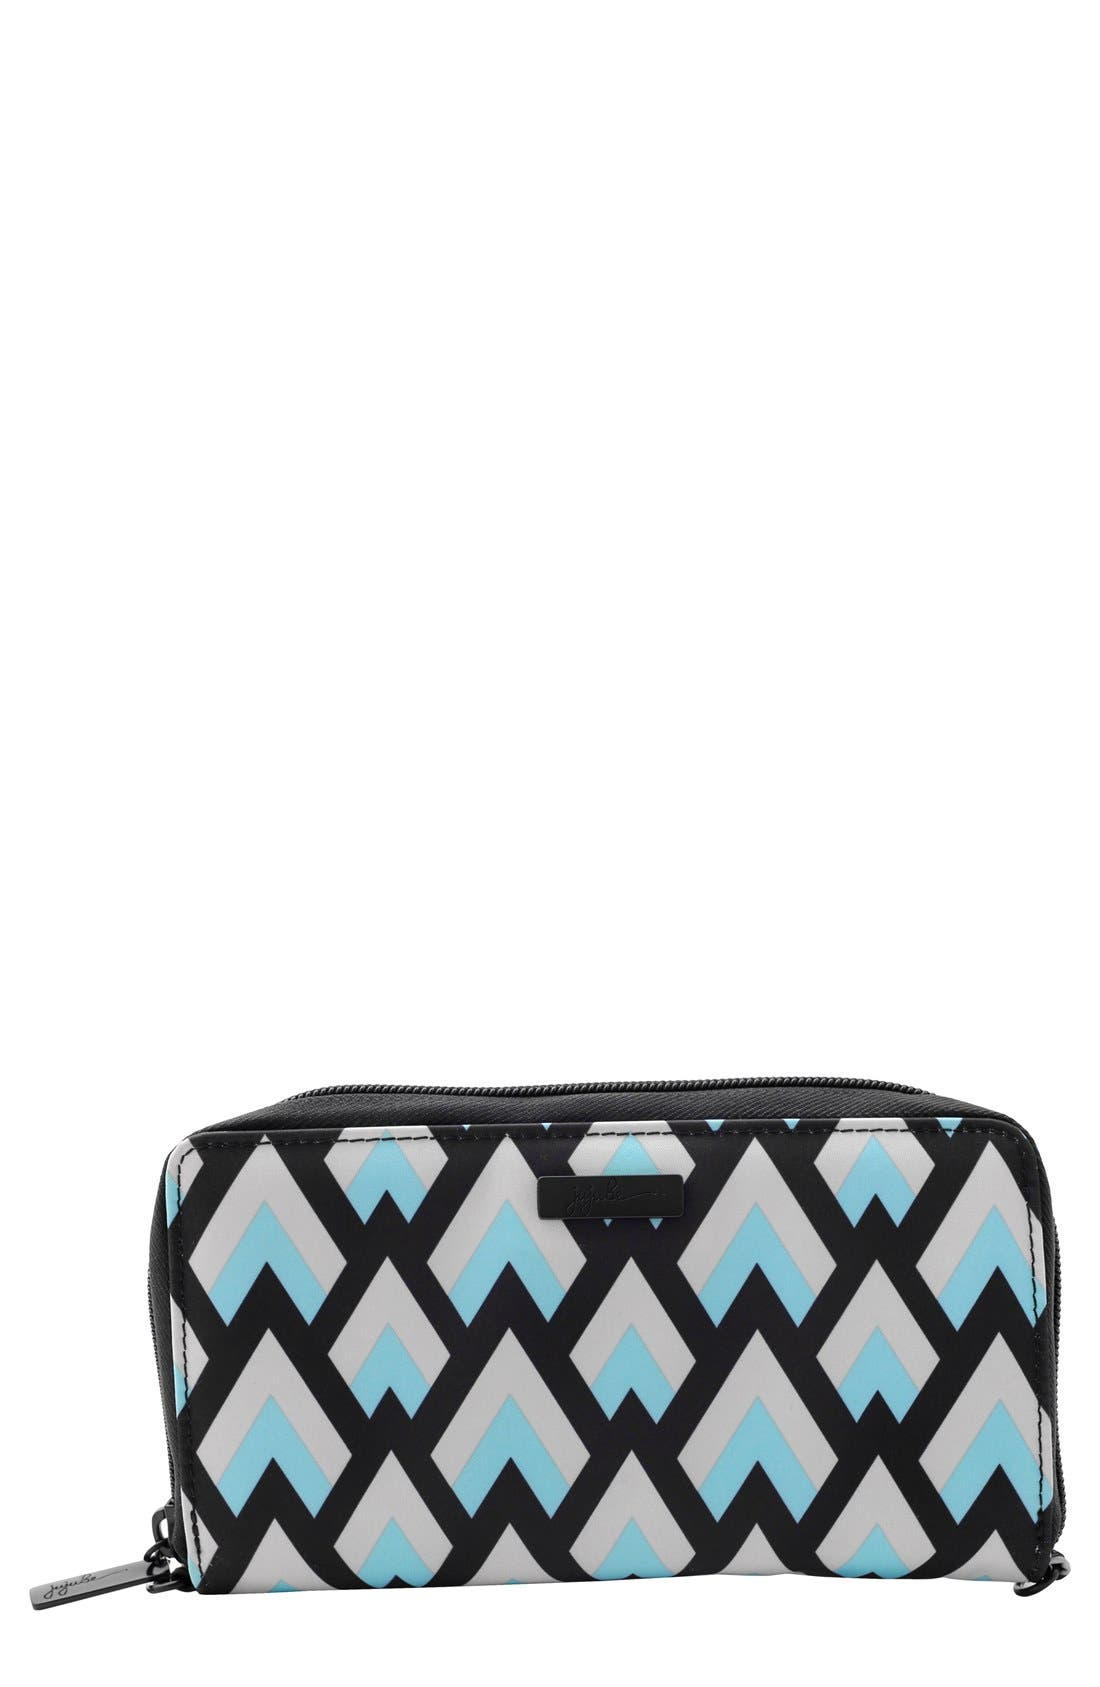 Onyx Be Spendy Clutch Wallet,                         Main,                         color, 003